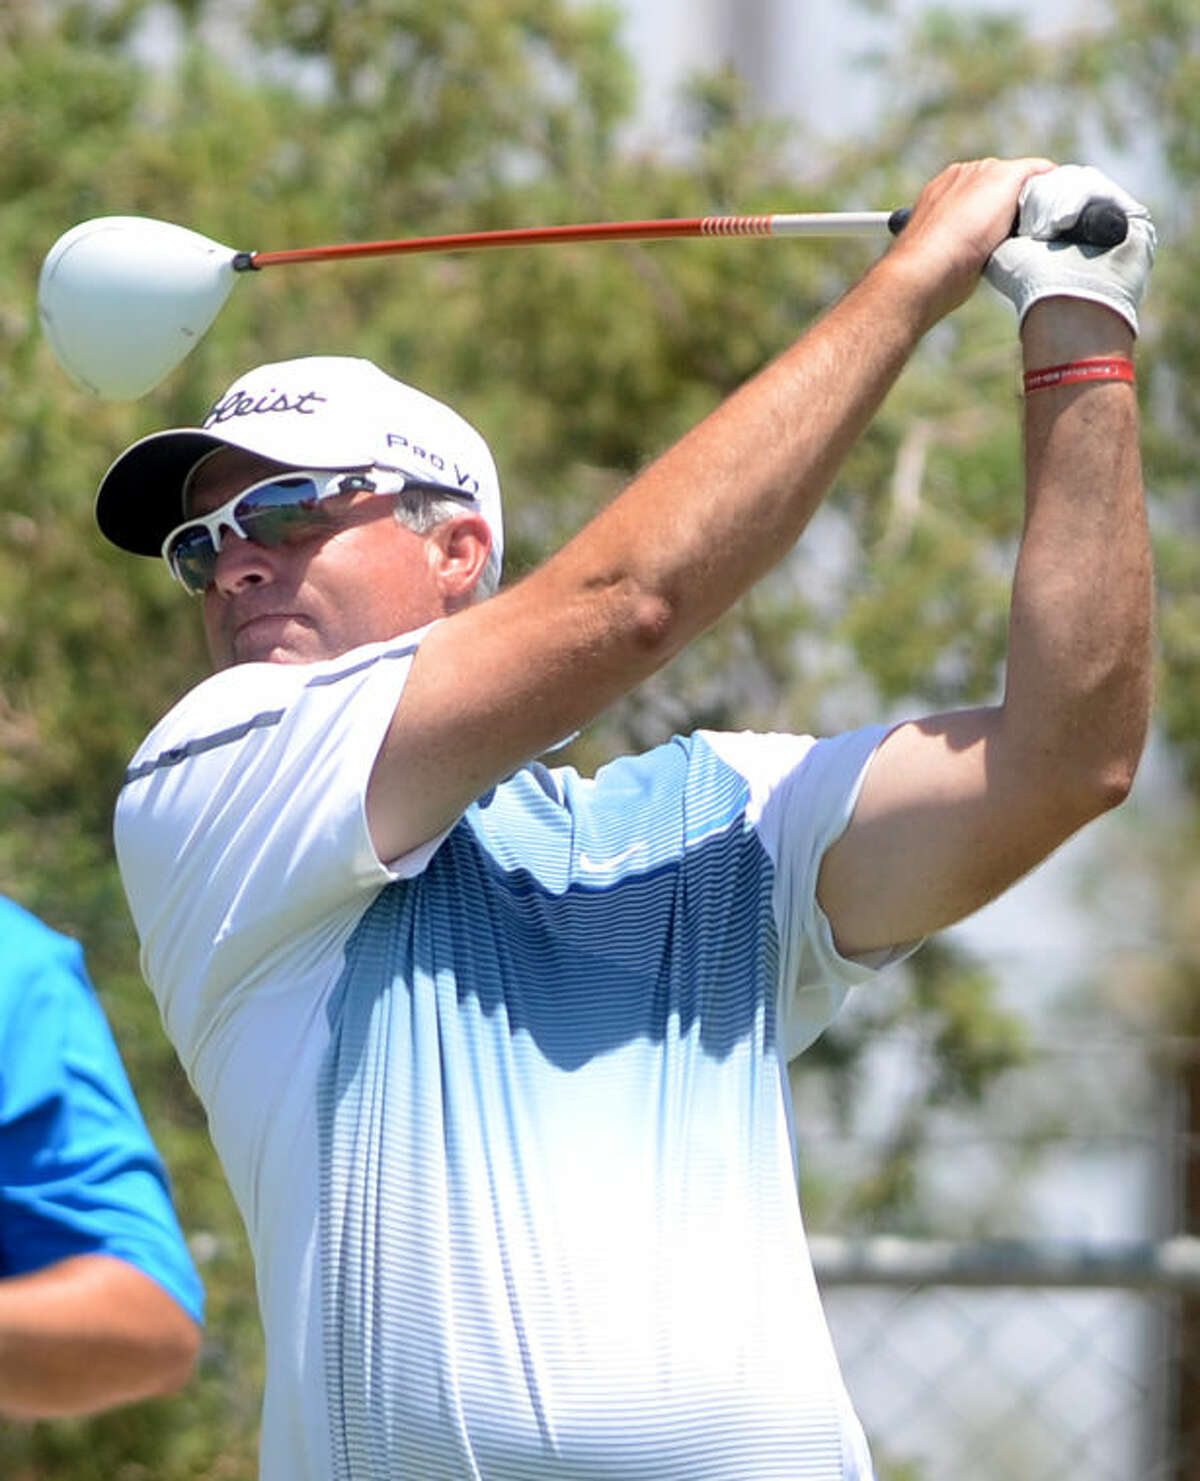 John McLeod tees off during the Ranchland Hills Blowout on Saturday at Ranchland. James Durbin/Reporter-Telegram